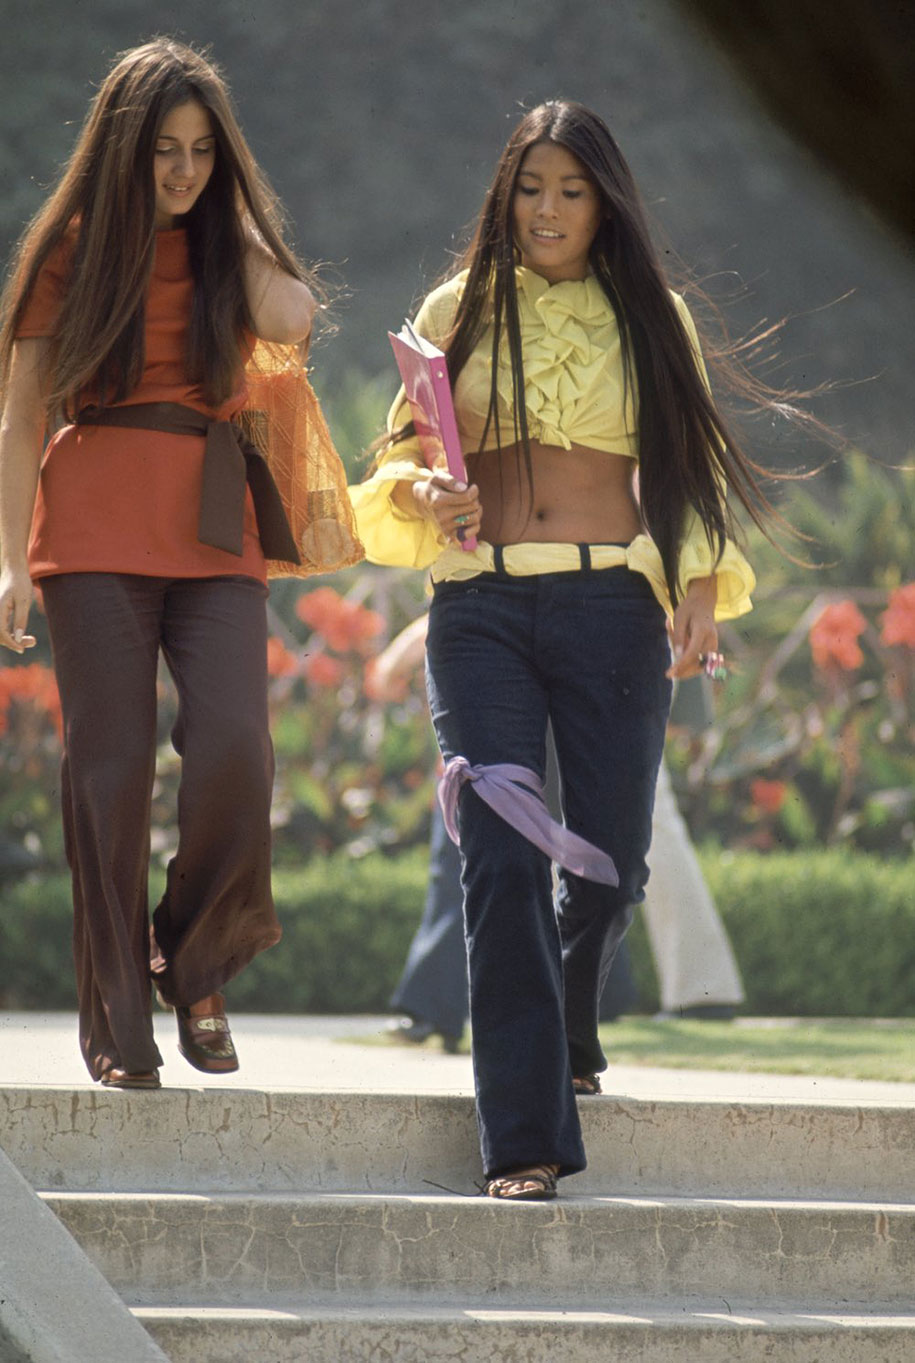 1969-hippie-high-school-counterculture-photography-9